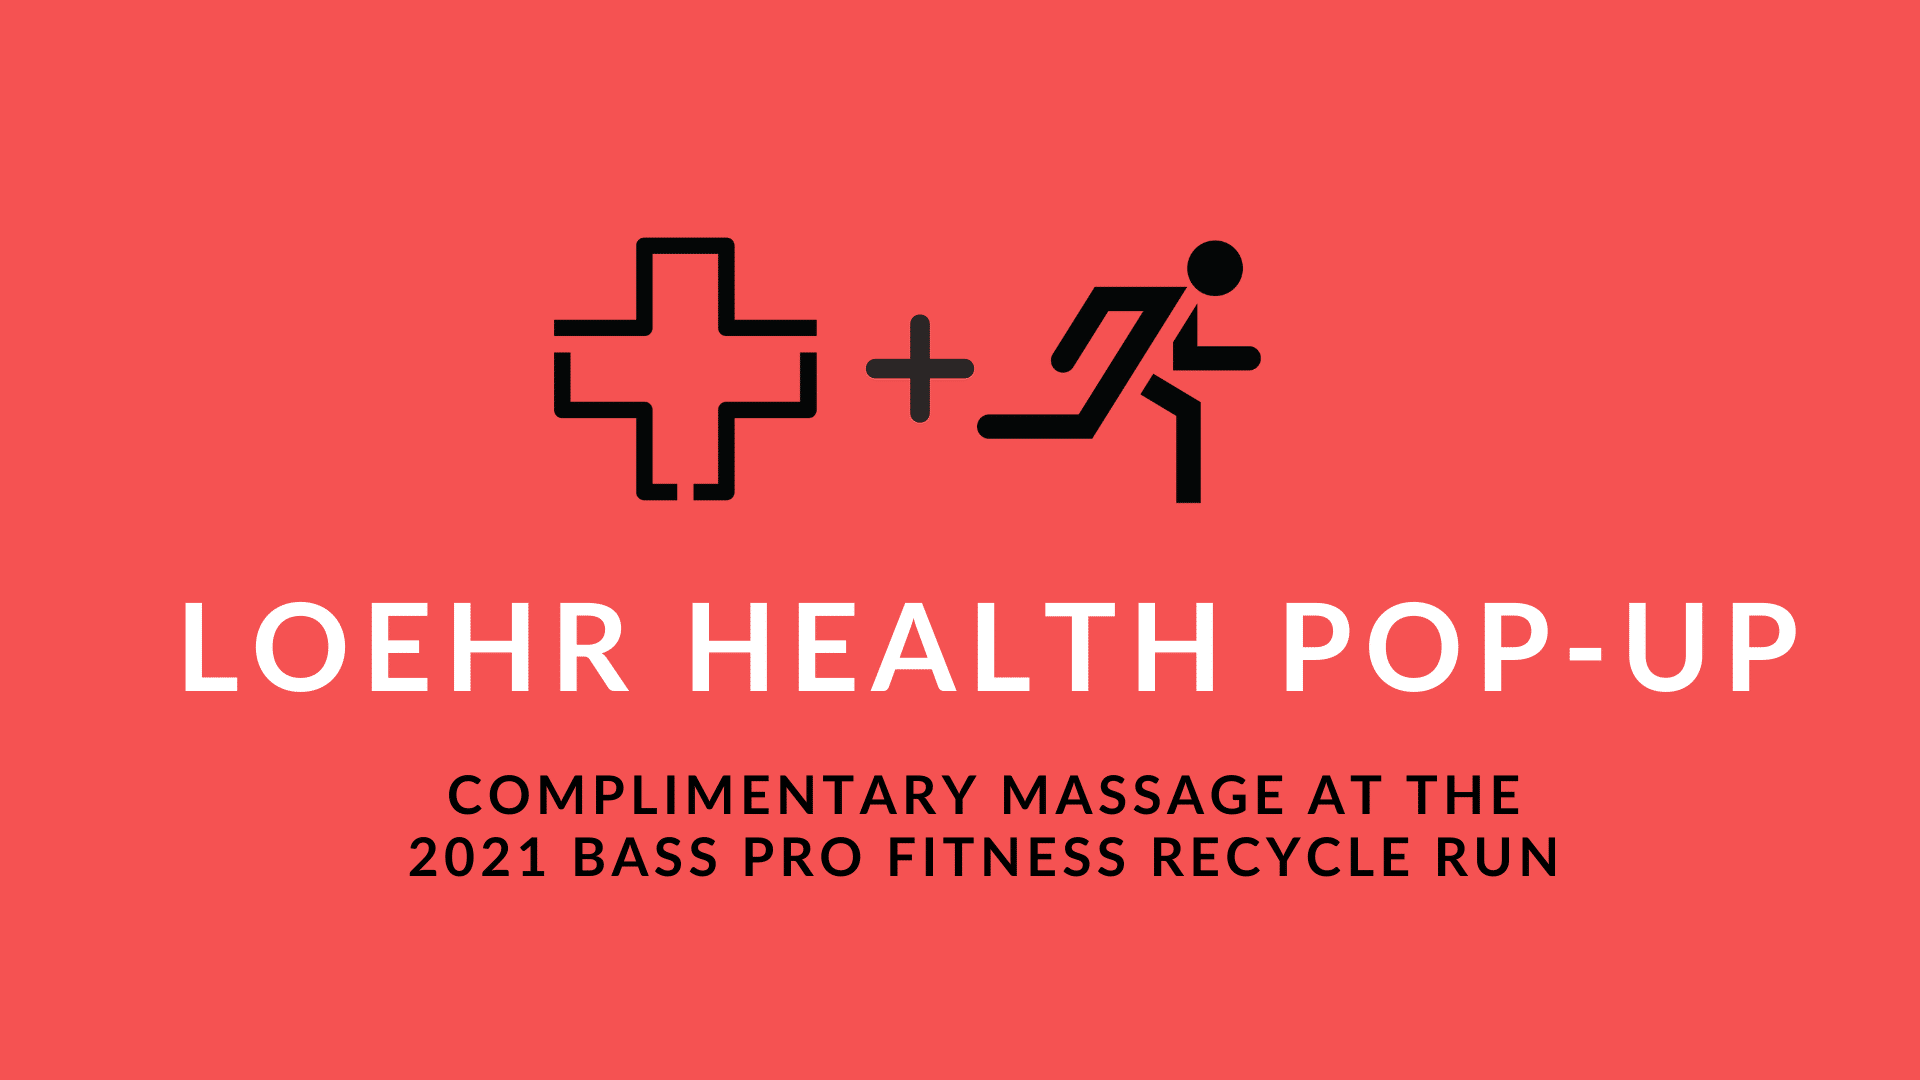 Loehr Health Pop-up. Free Massage at Bass Pro Recycle Run June 10, 2021.